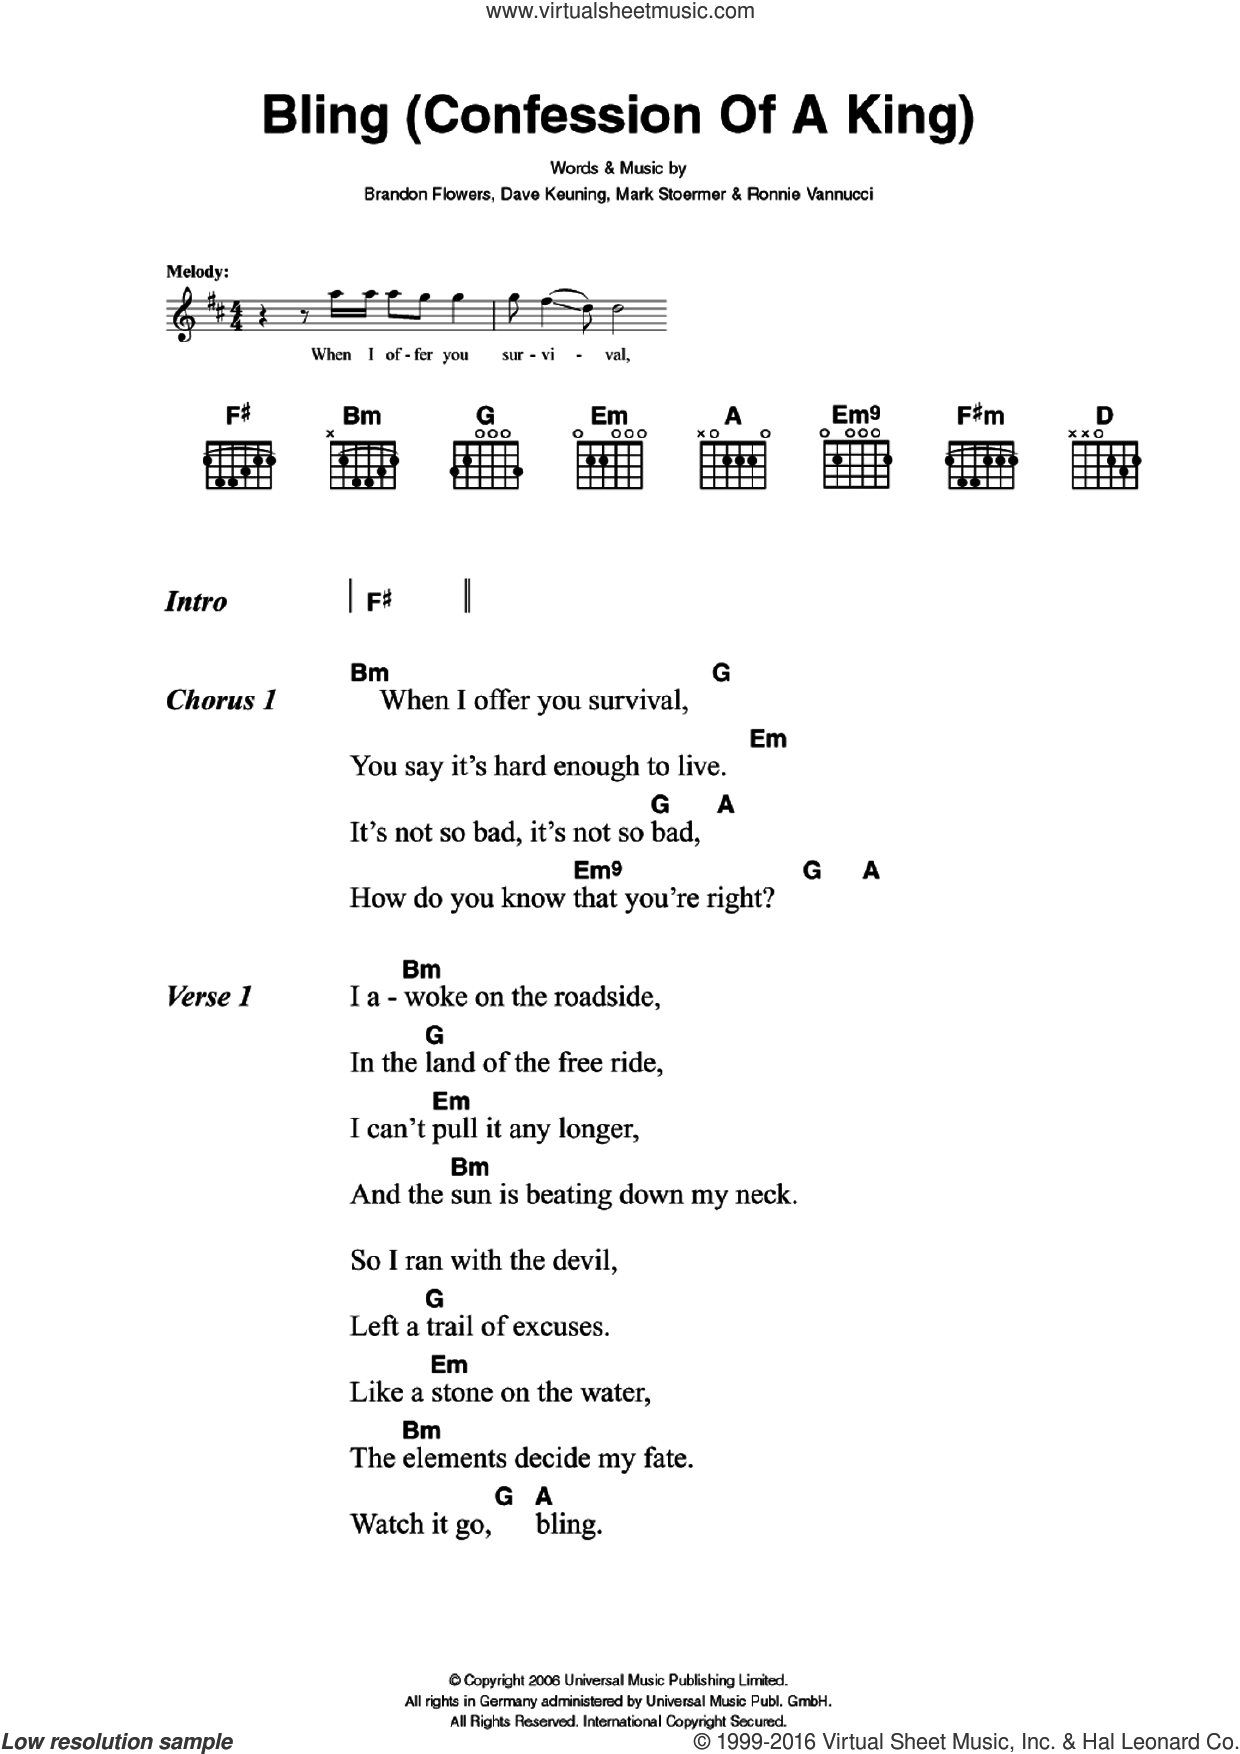 Bling (Confession Of A King) sheet music for guitar (chords) by The Killers and Brandon Flowers. Score Image Preview.